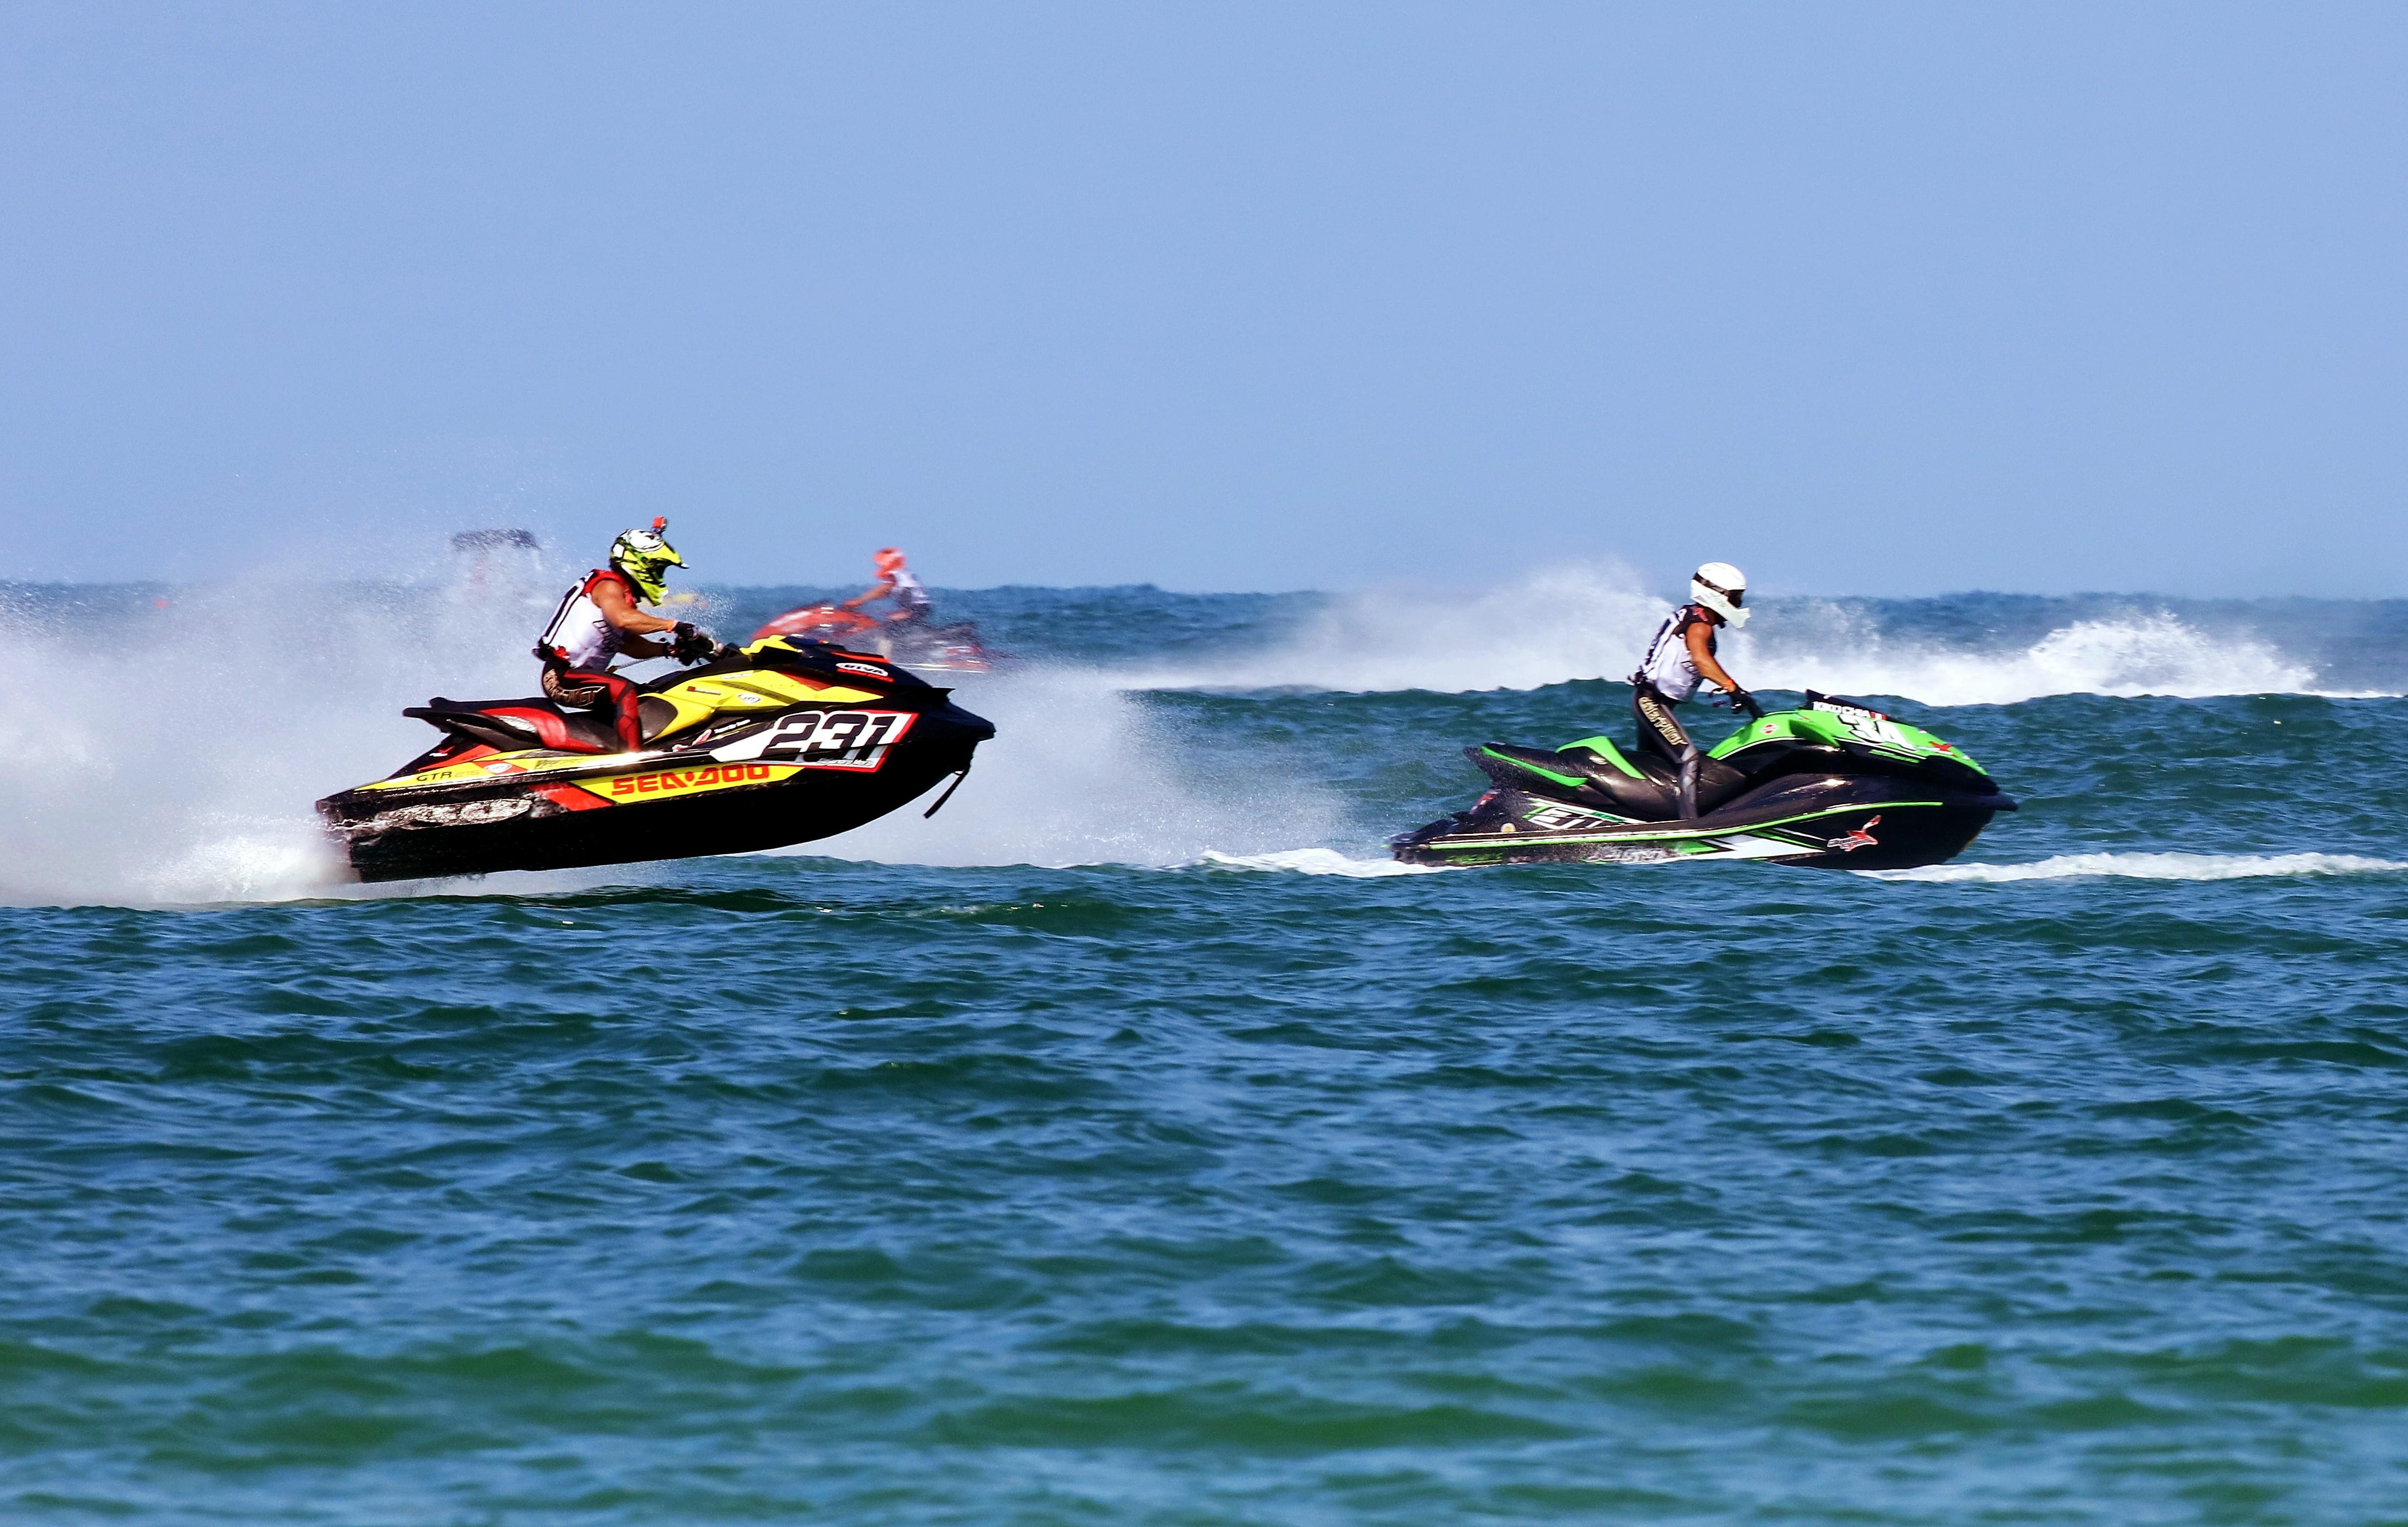 The smallest raceboats competing in Sarasota, Aqua X personal watercraft comprised some of the biggest fleets and helped deliver nonstop action on the water.